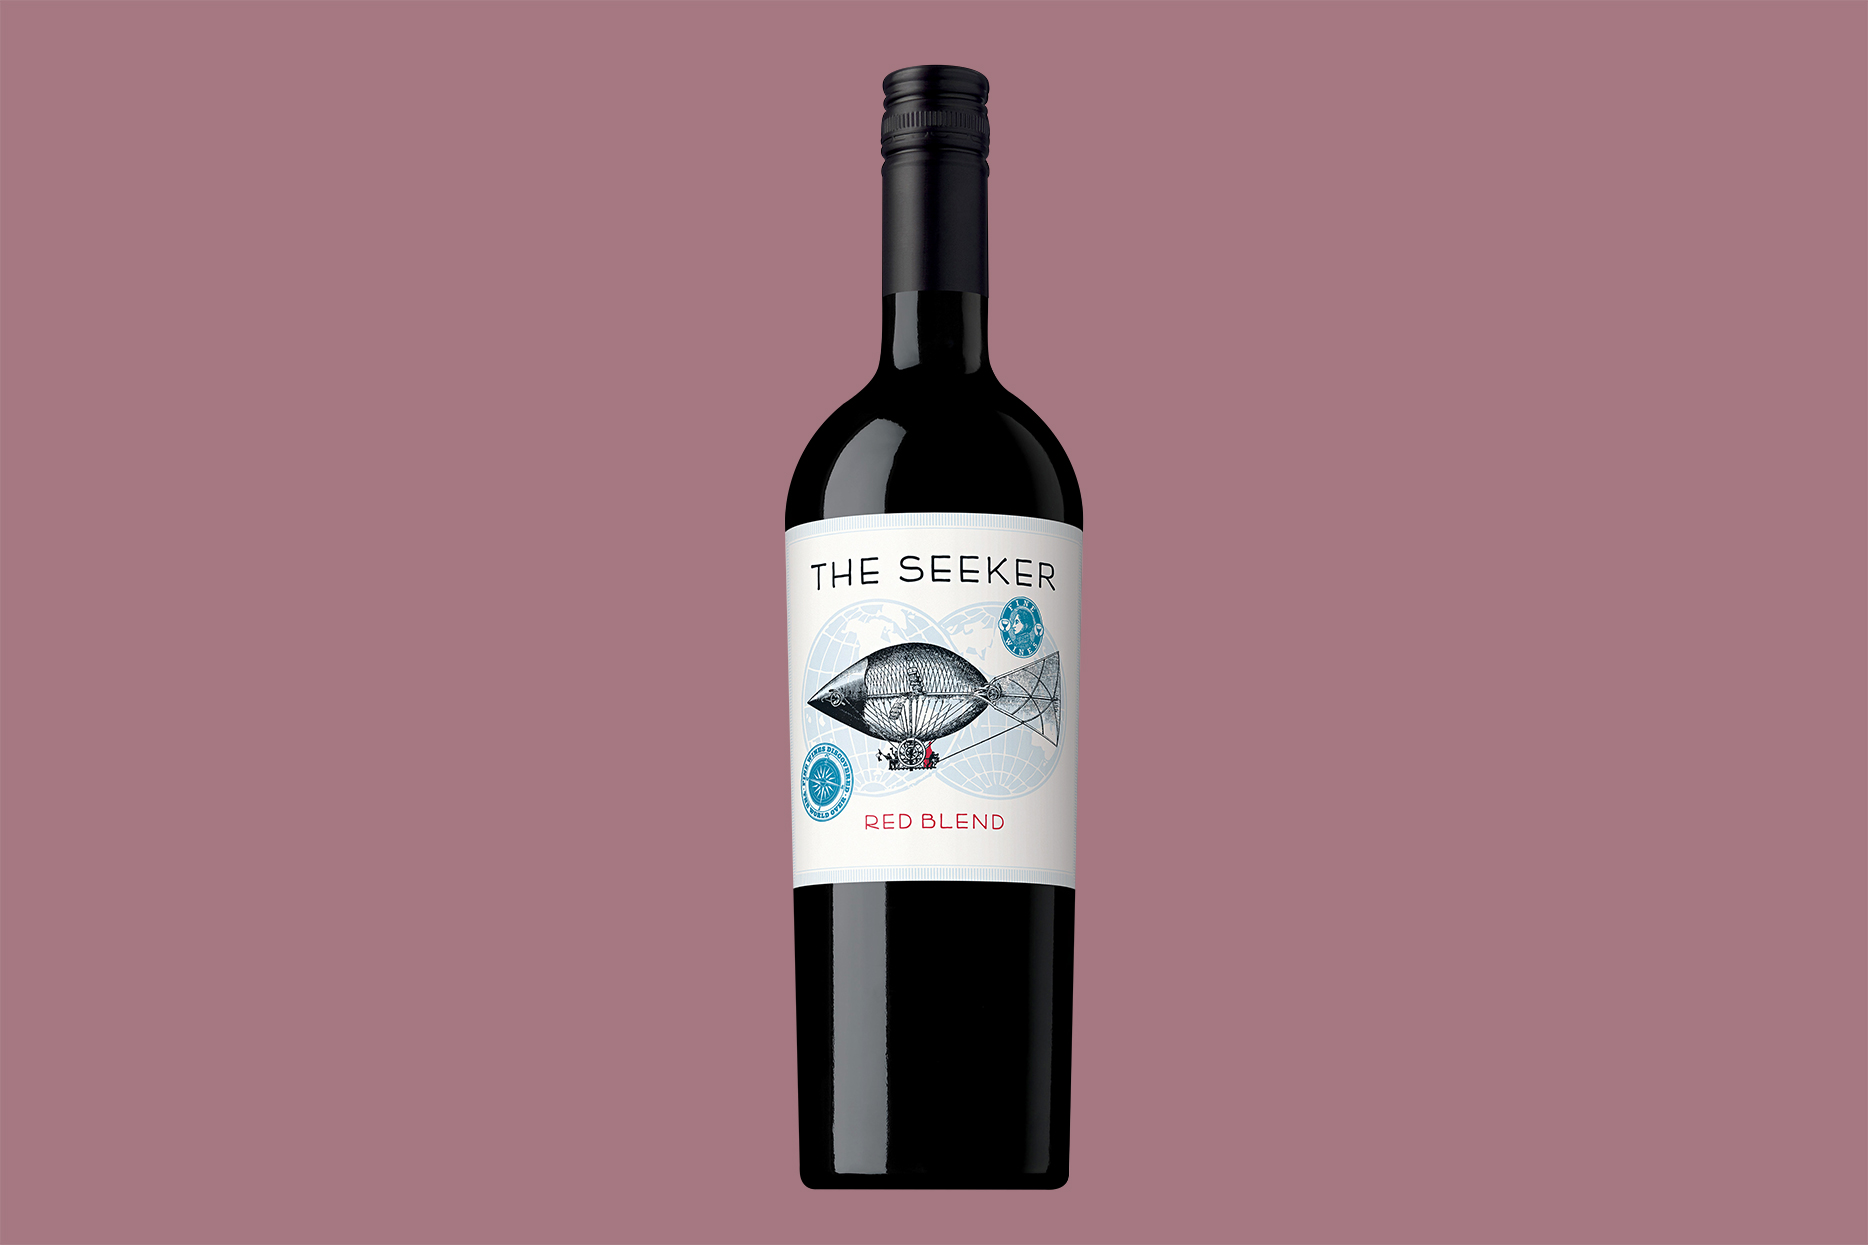 The Seeker Red Blend Wine